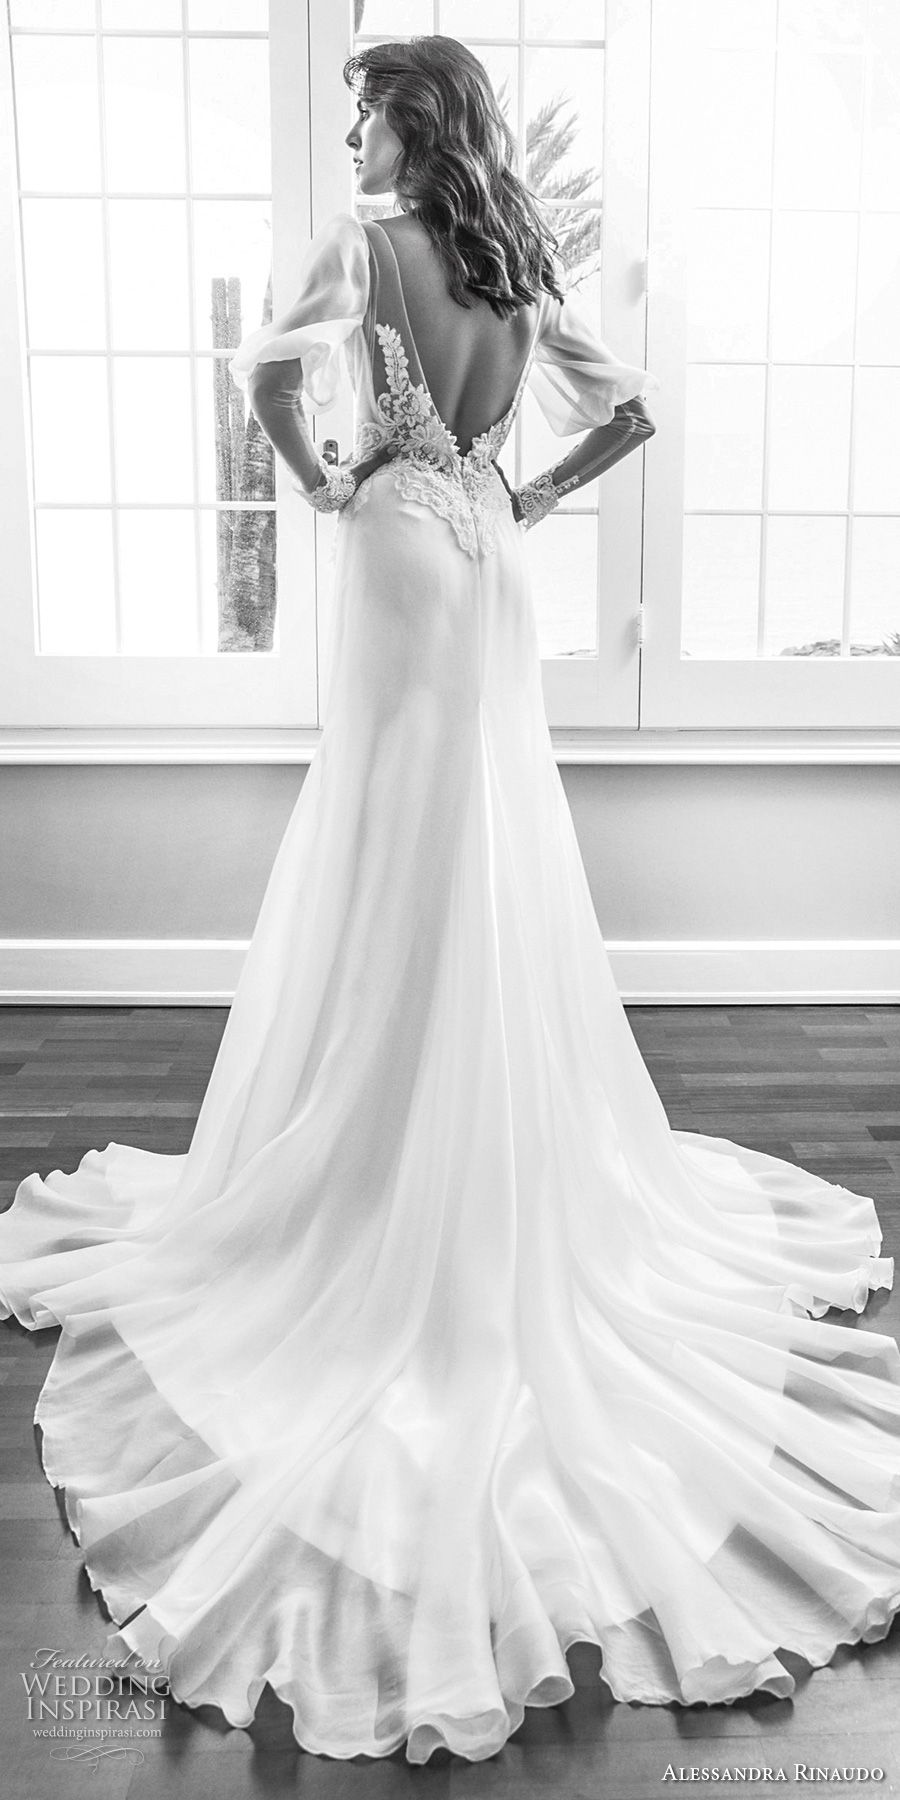 alessandra rinaudo 2018 bridal long mutton sleeves deep v neck heavily embellished elegant vintage soft a line wedding dress low open back chapel train (07) bv